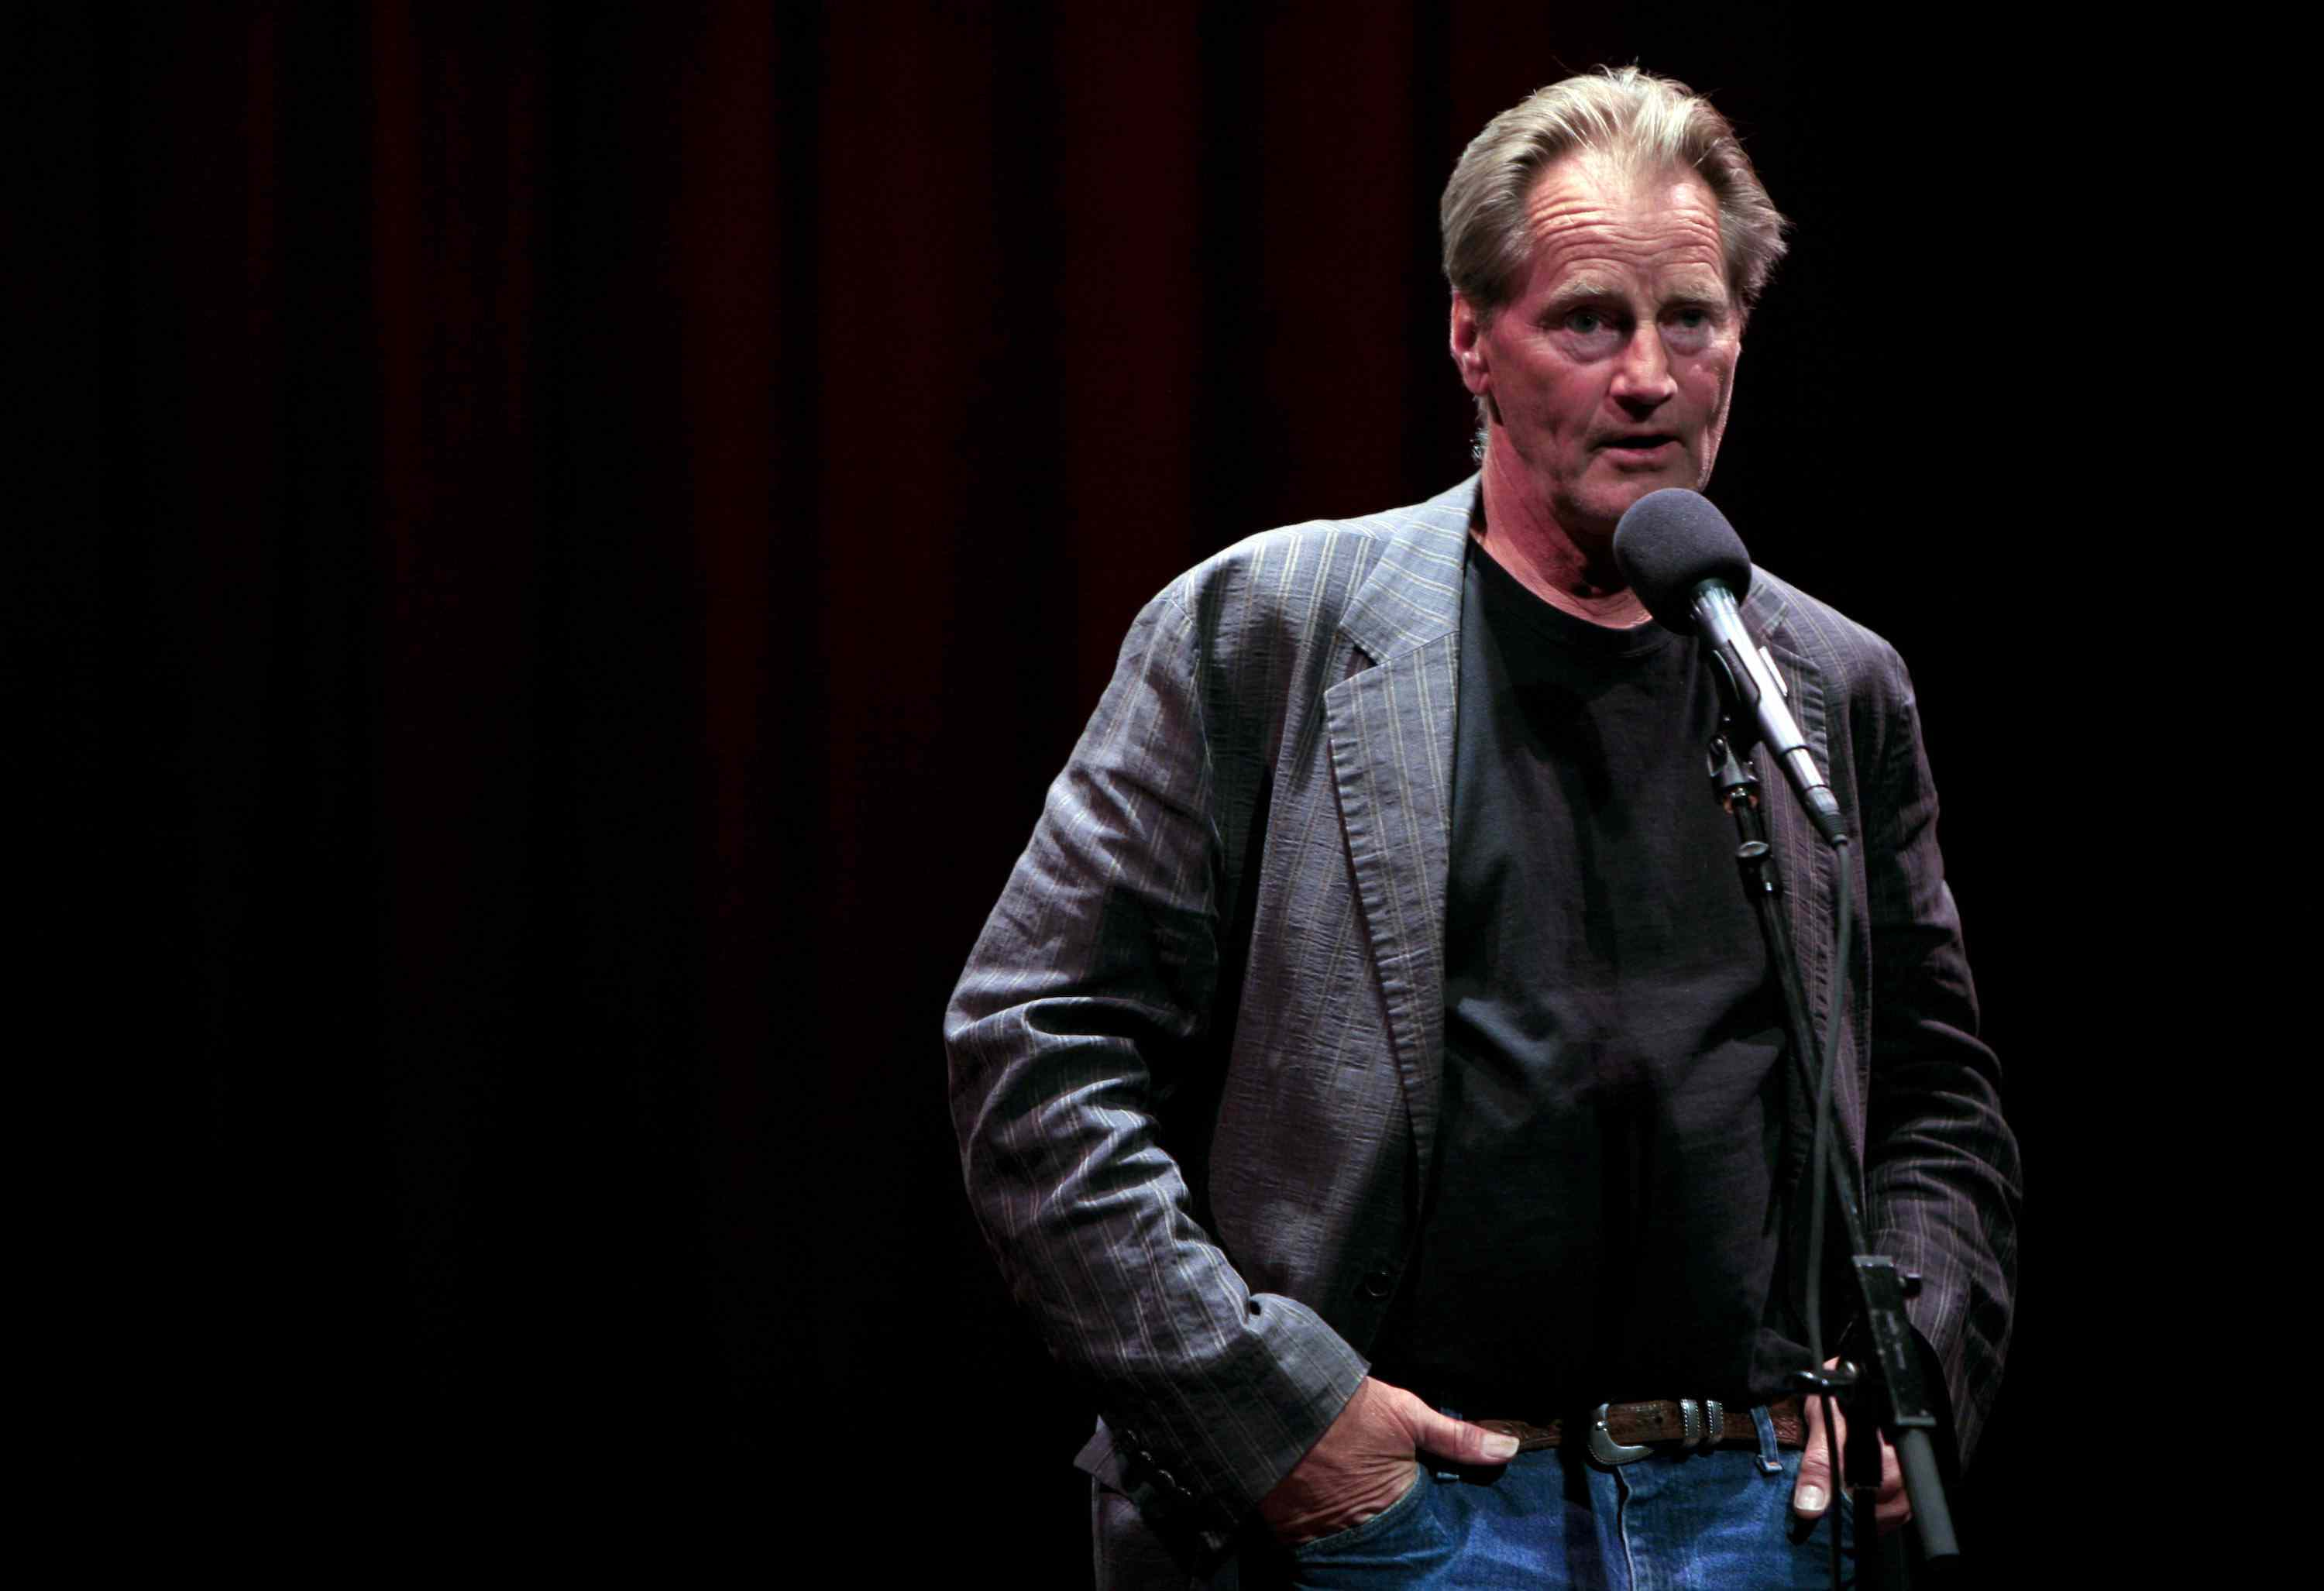 Sam Shepard, standing with hands in pockets, at a microphone